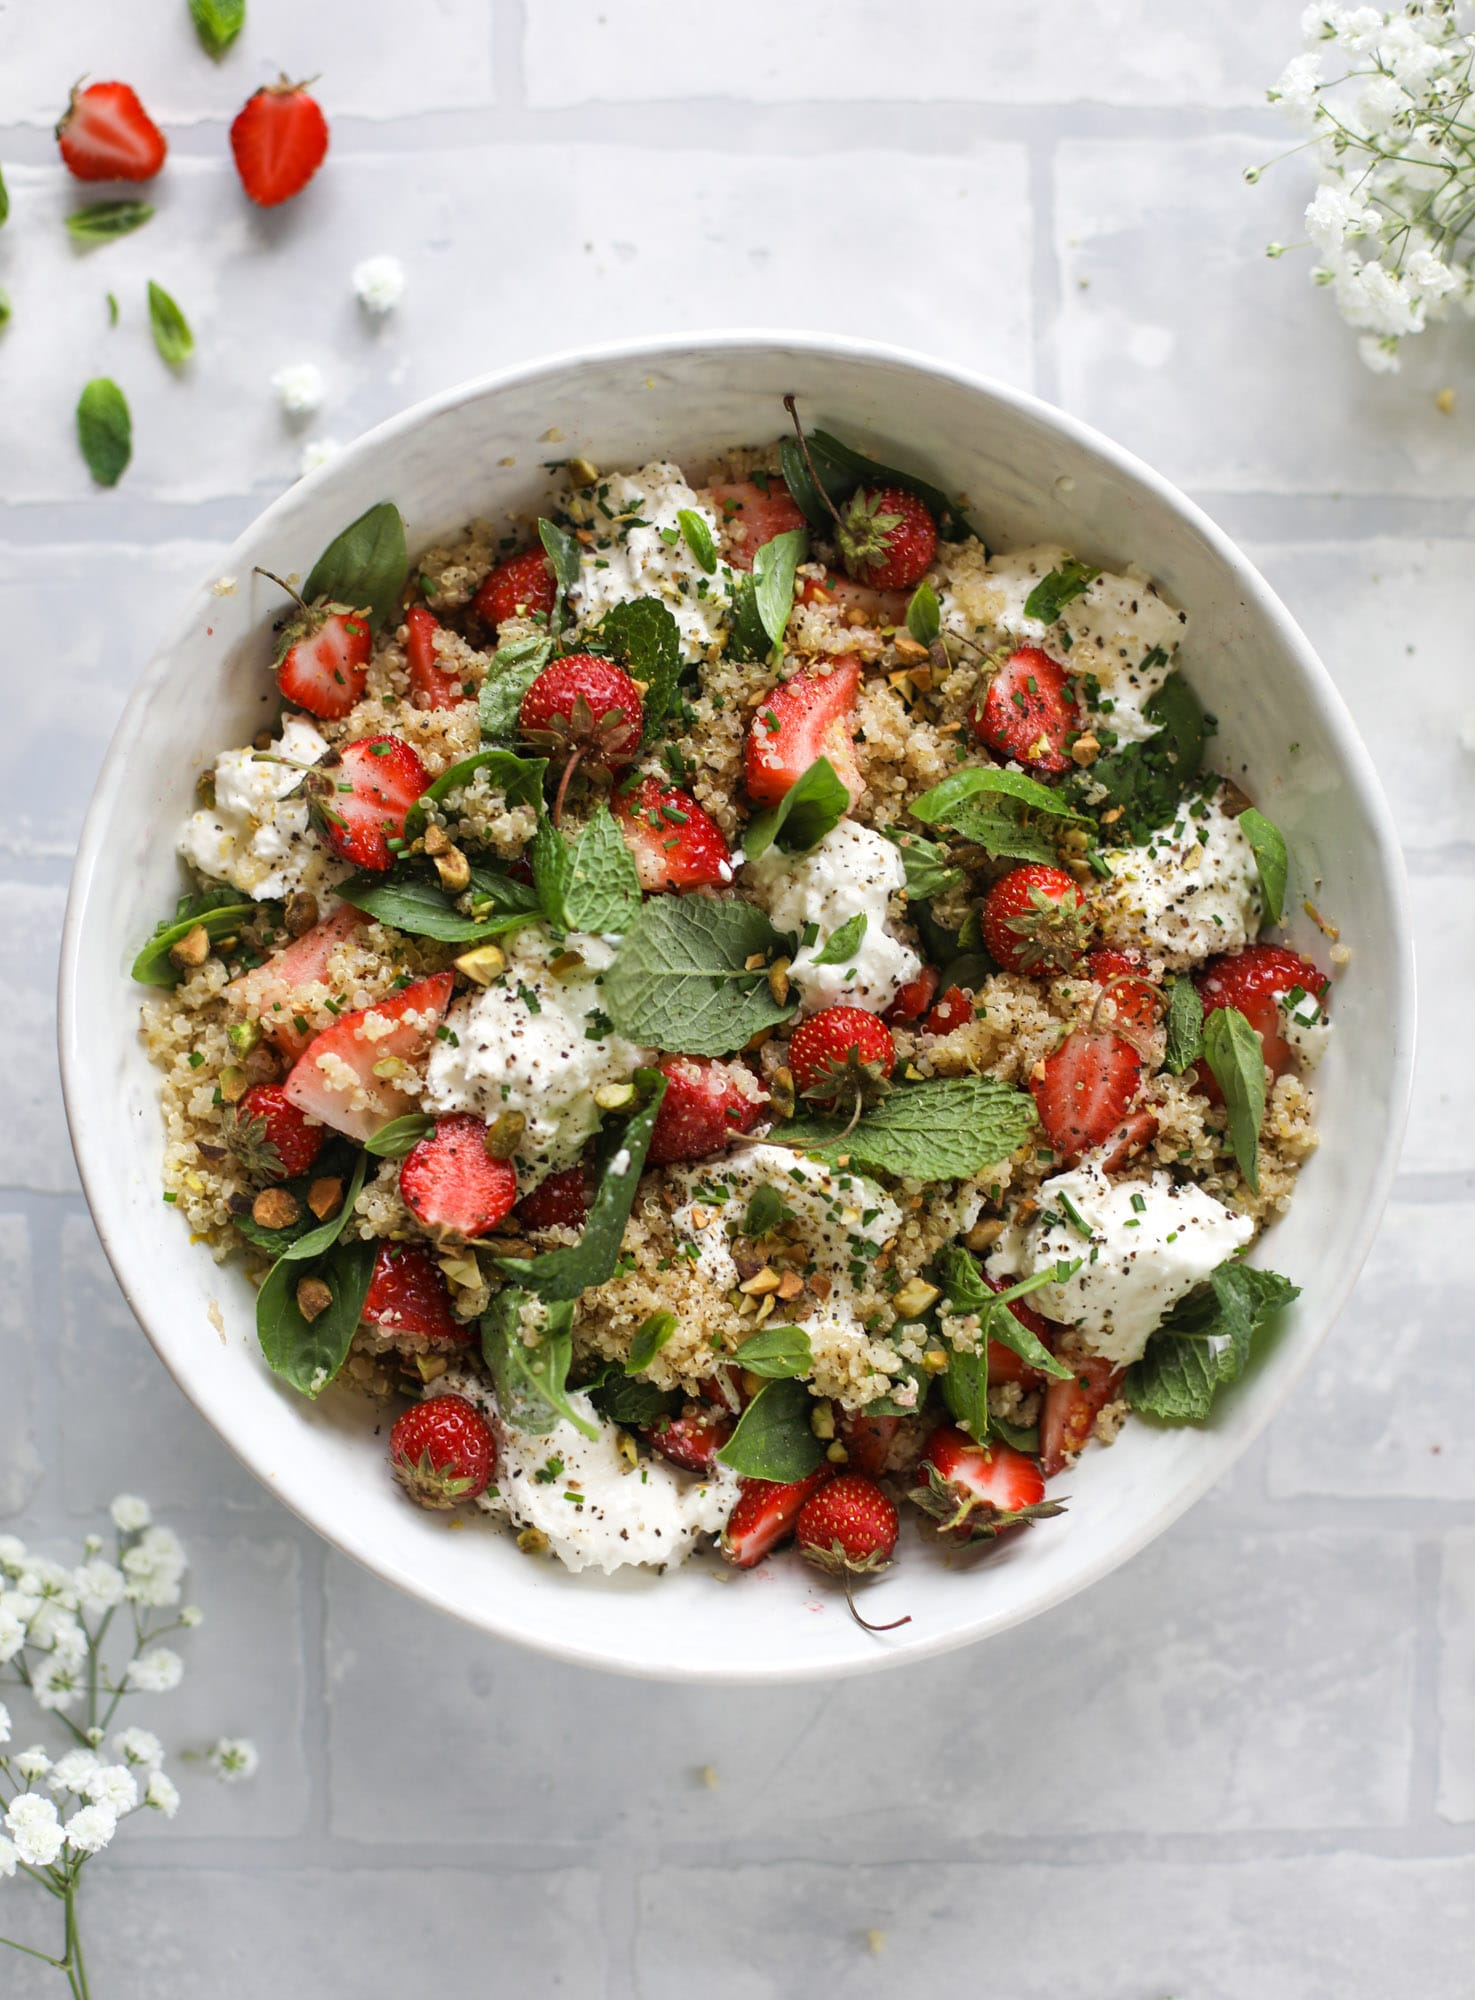 Strawberry Quinoa Salad With Burrata Fresh Herbs And Pistachios